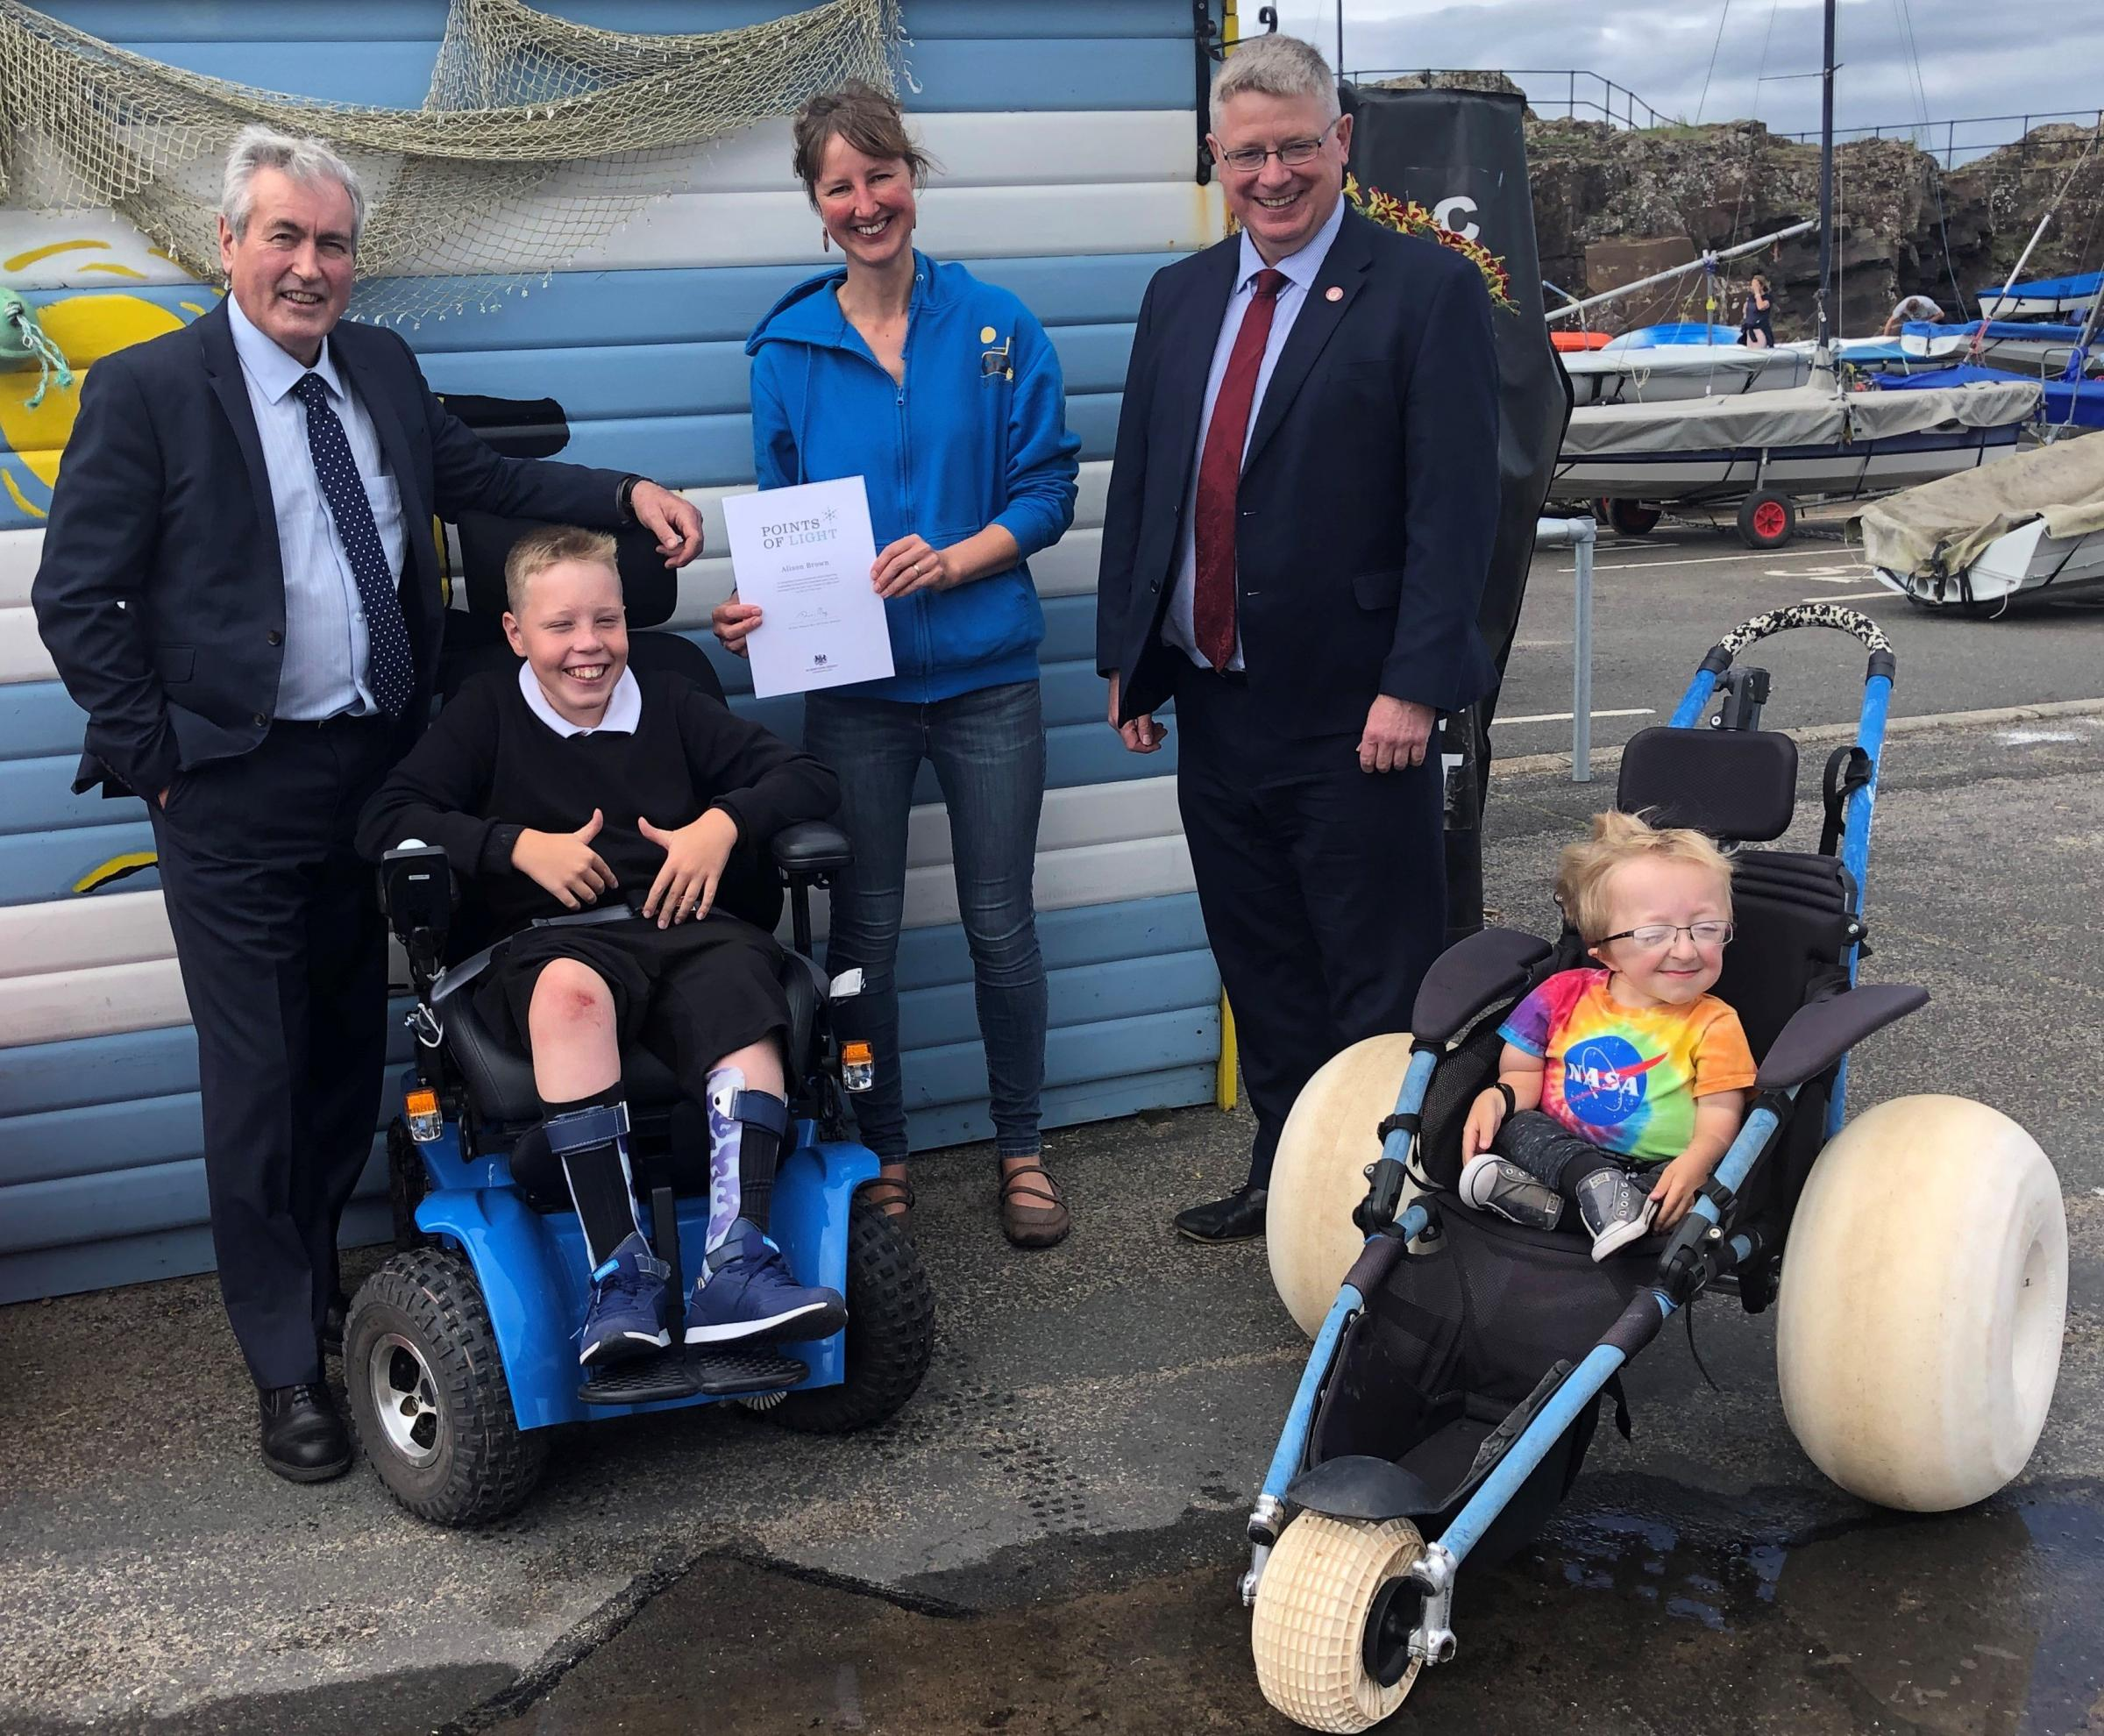 Beach Wheelchairs' founder given Prime Minister's award